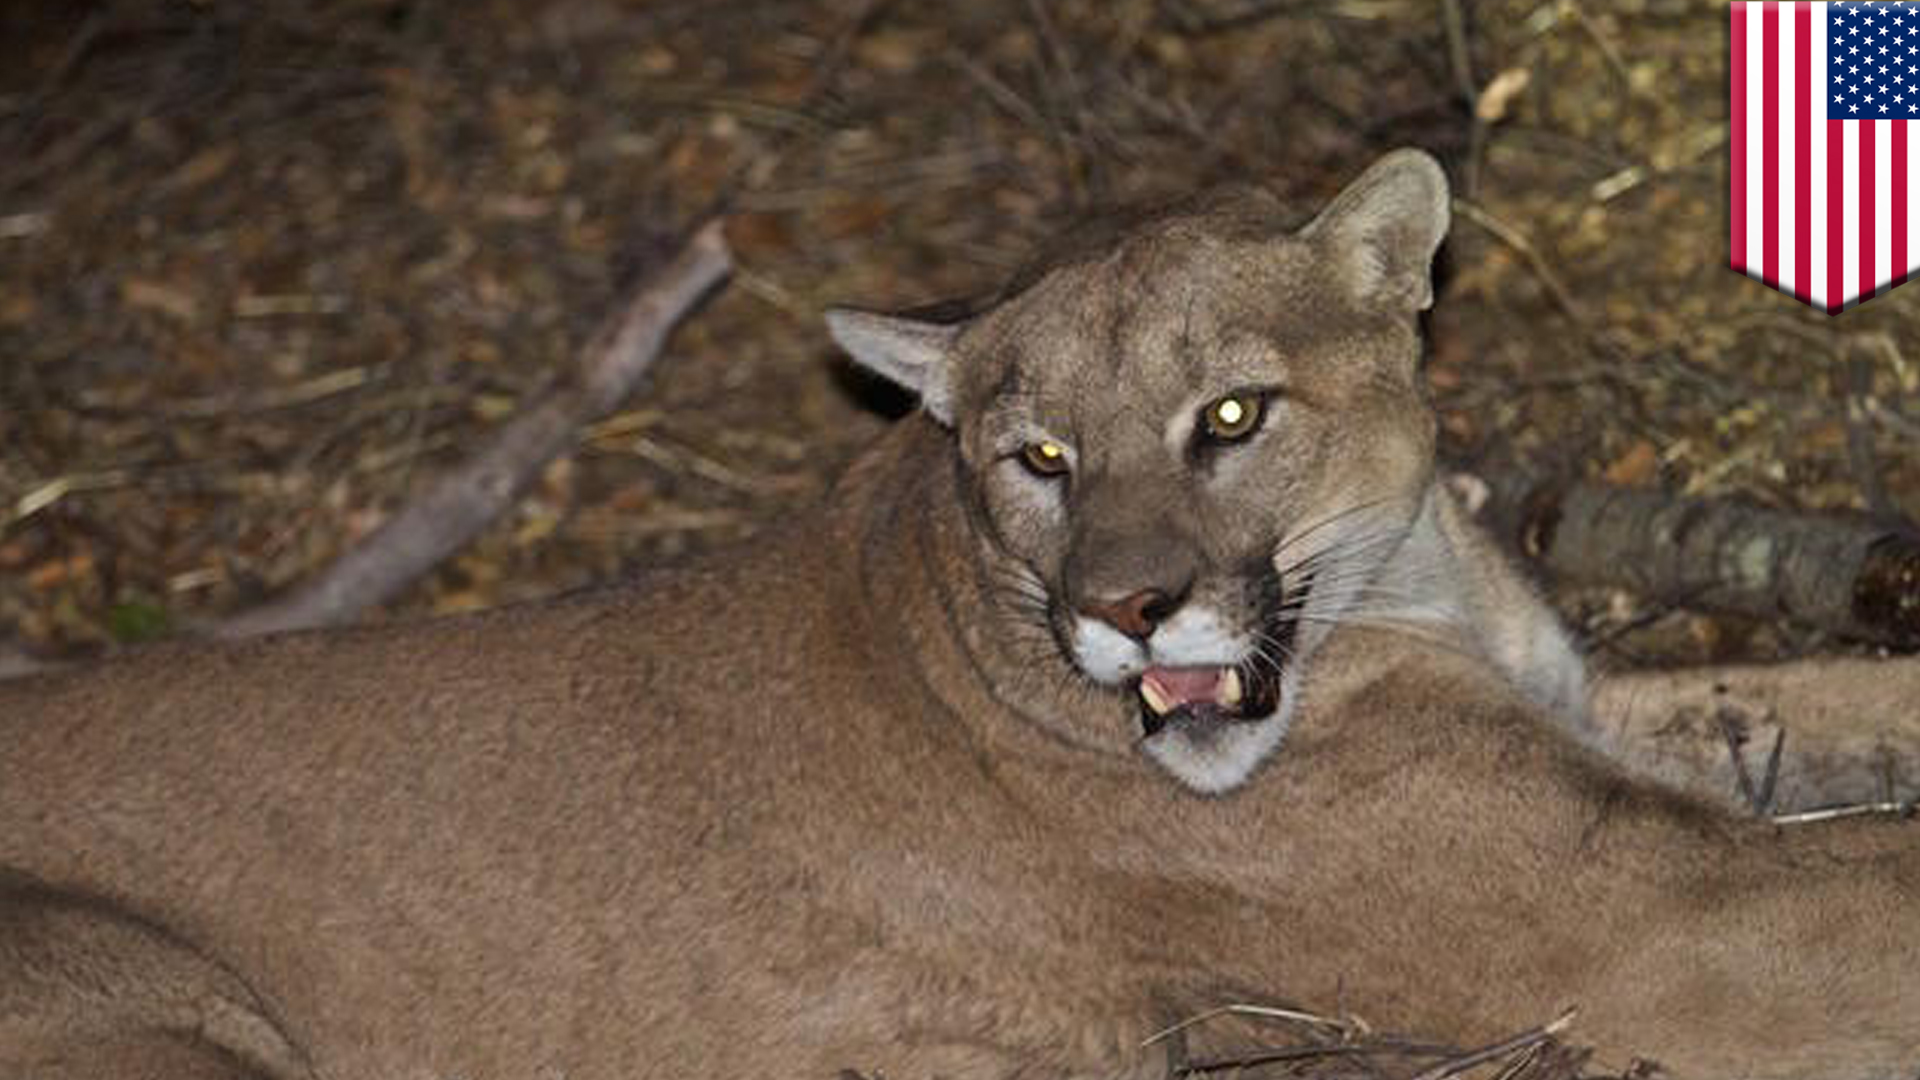 Rancher gets permit to shoot mountain lion that killed 12 farm animals for fun